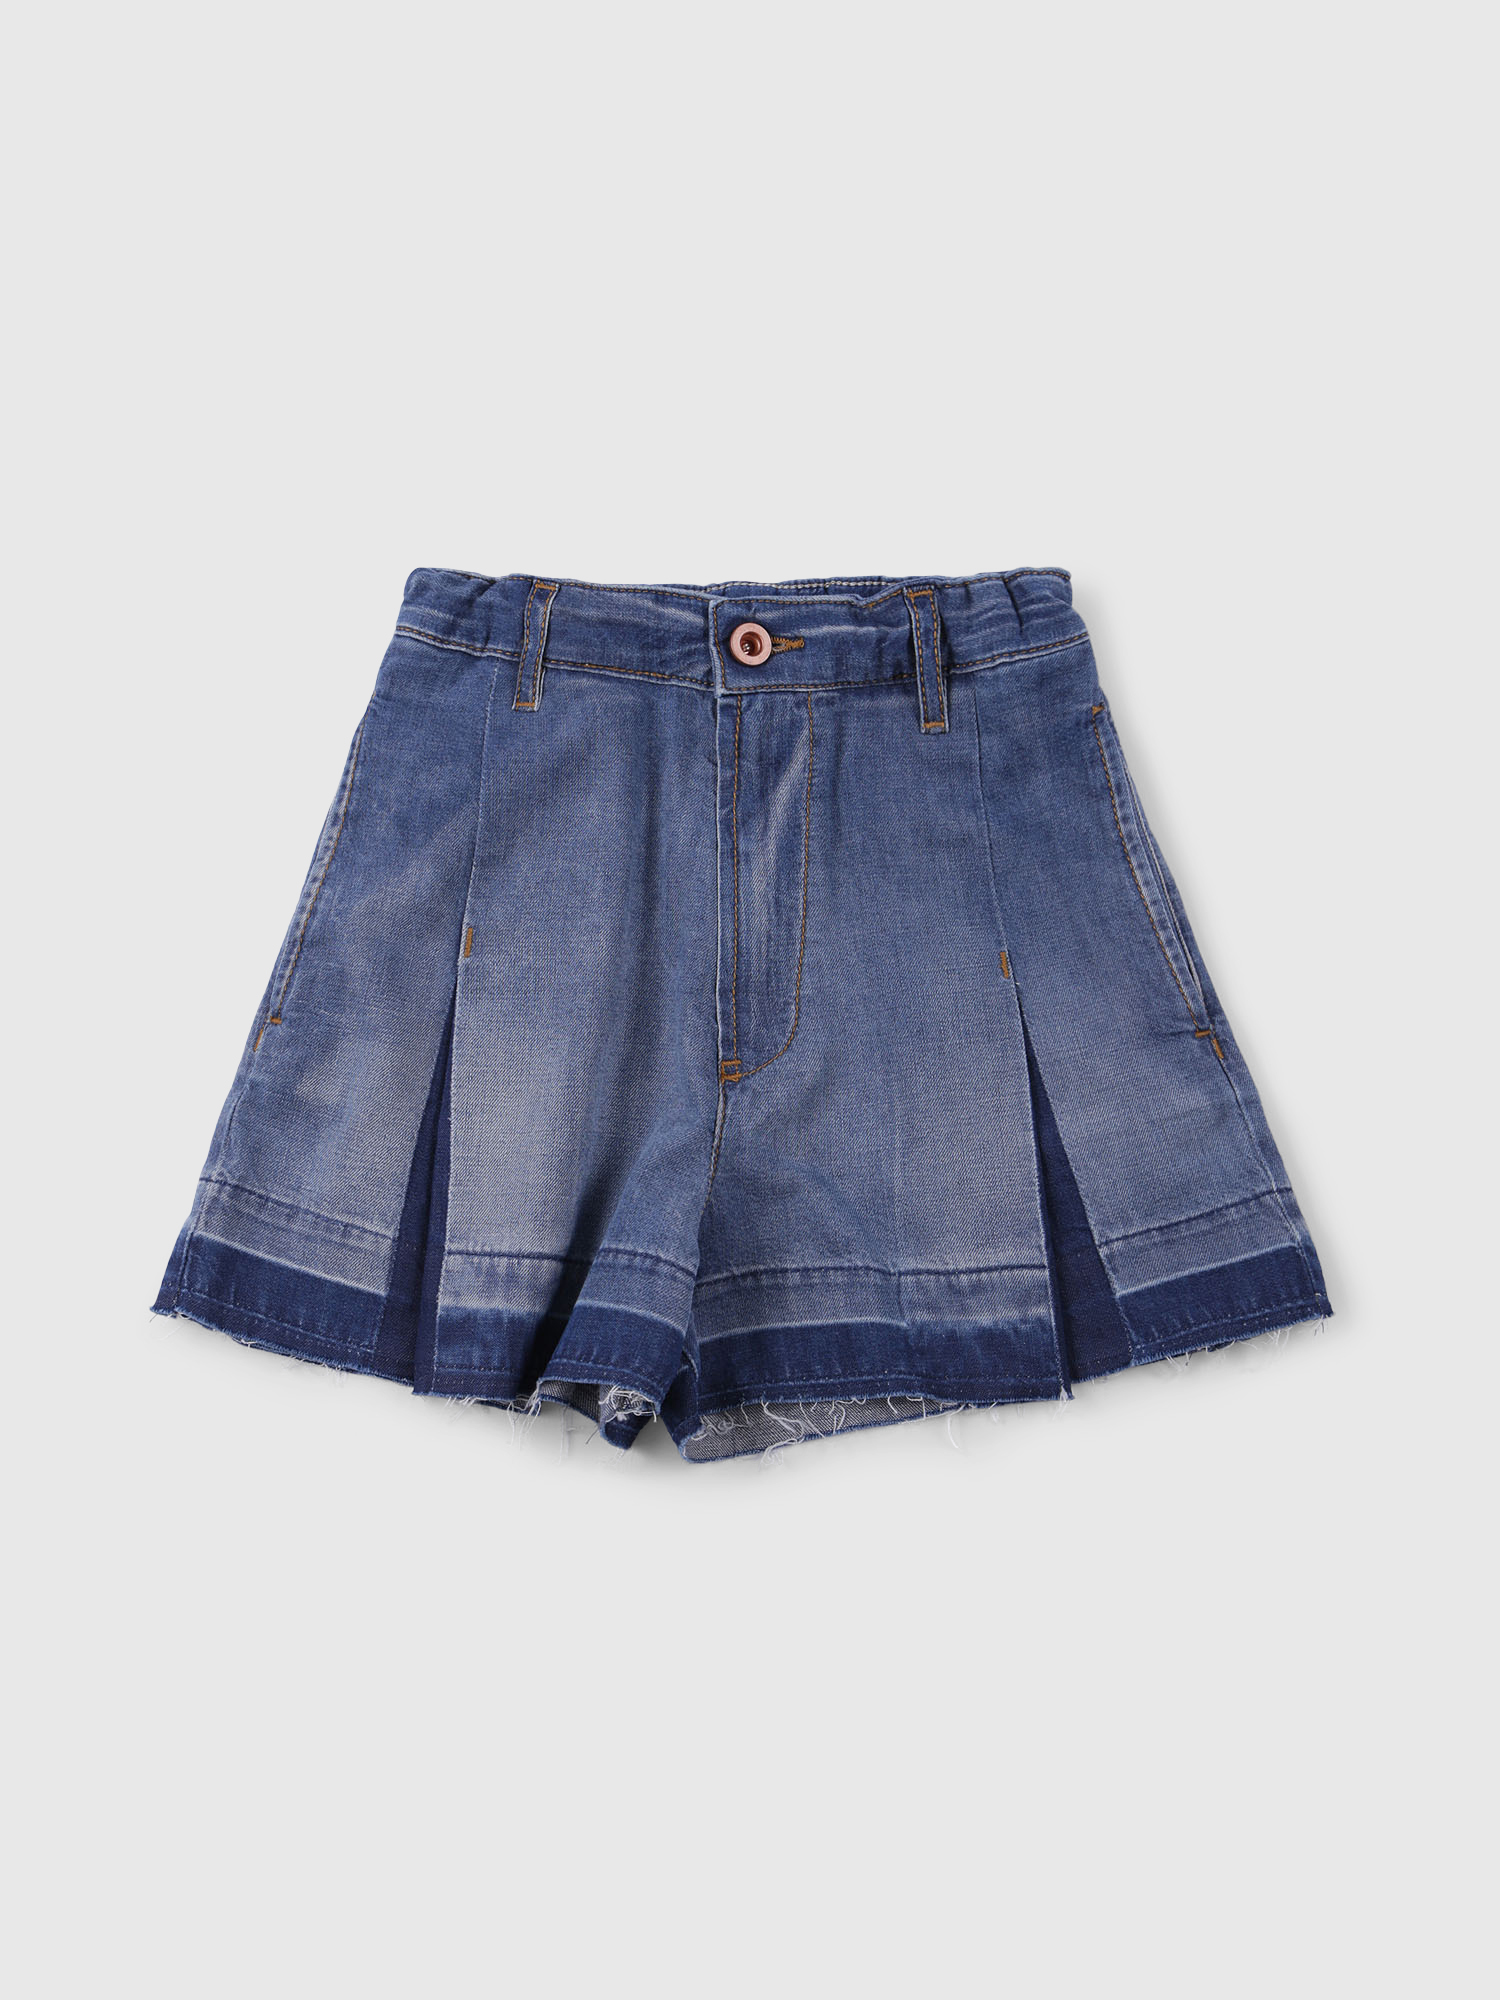 Diesel - PIZZY SH,  - Shorts - Image 1